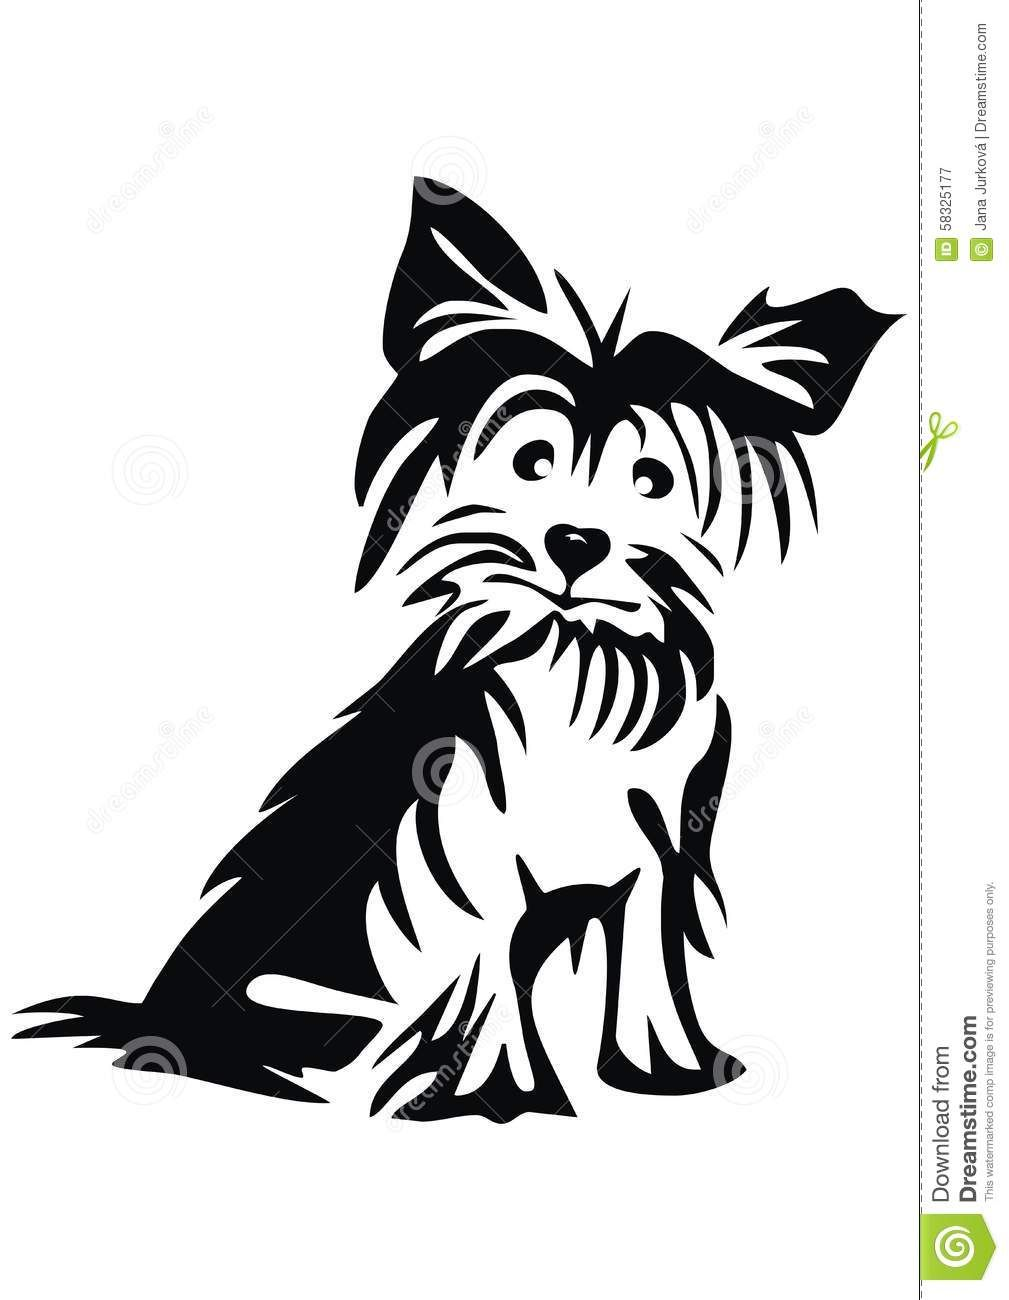 yorkie silhouette - Yahoo Image Search Results | silhouettes ...